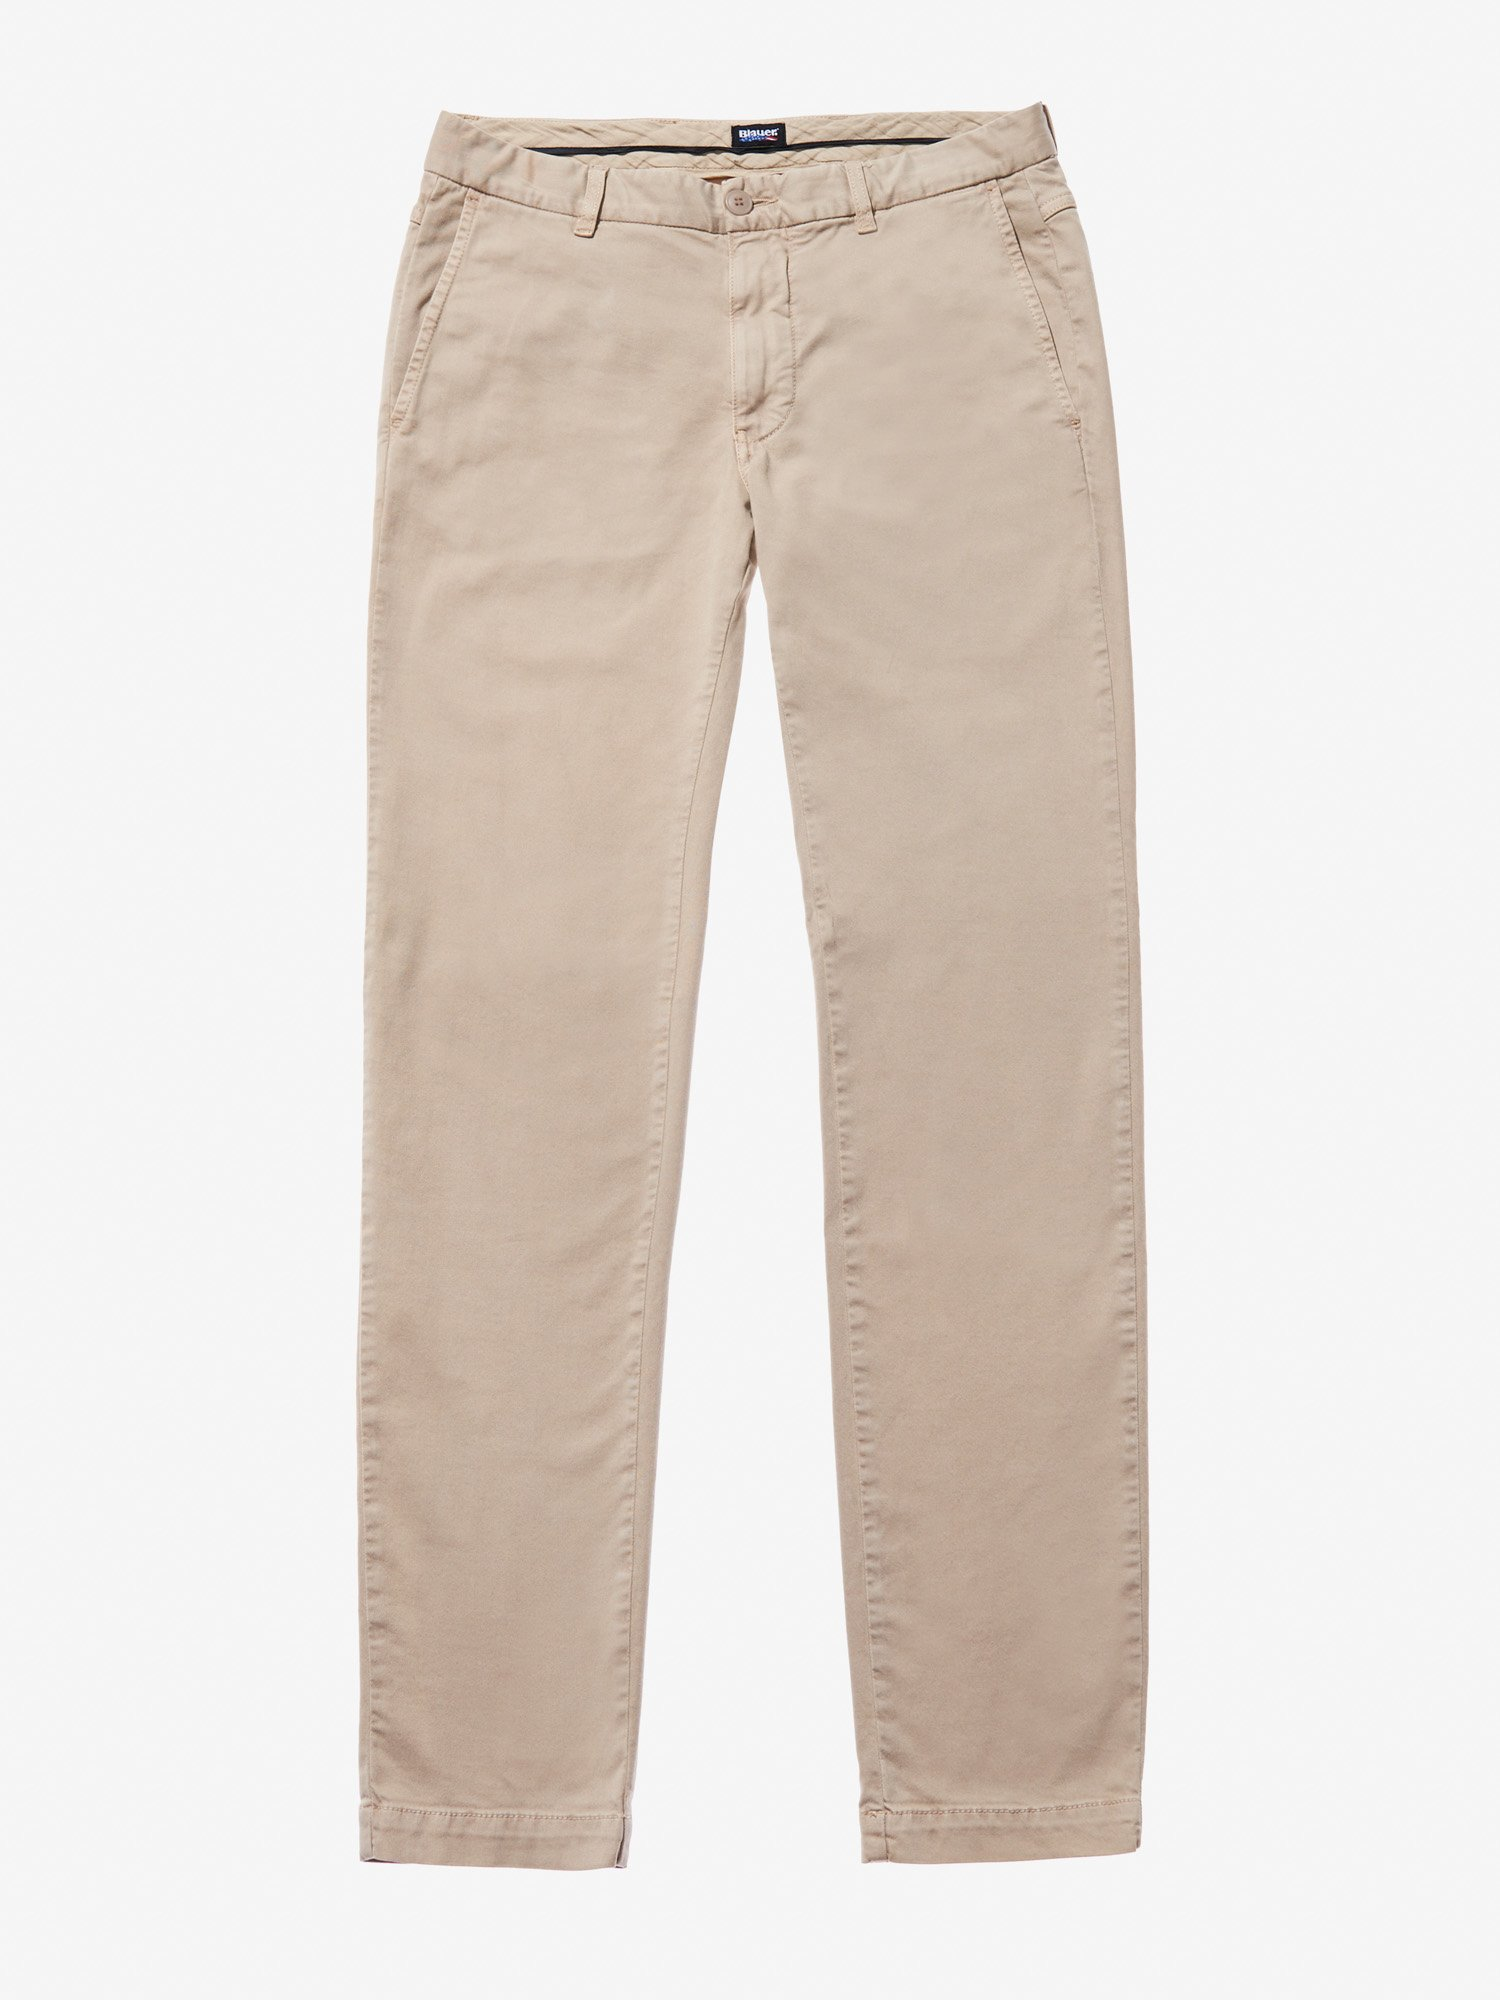 GARMENT DYED CHINO PANTS - Blauer